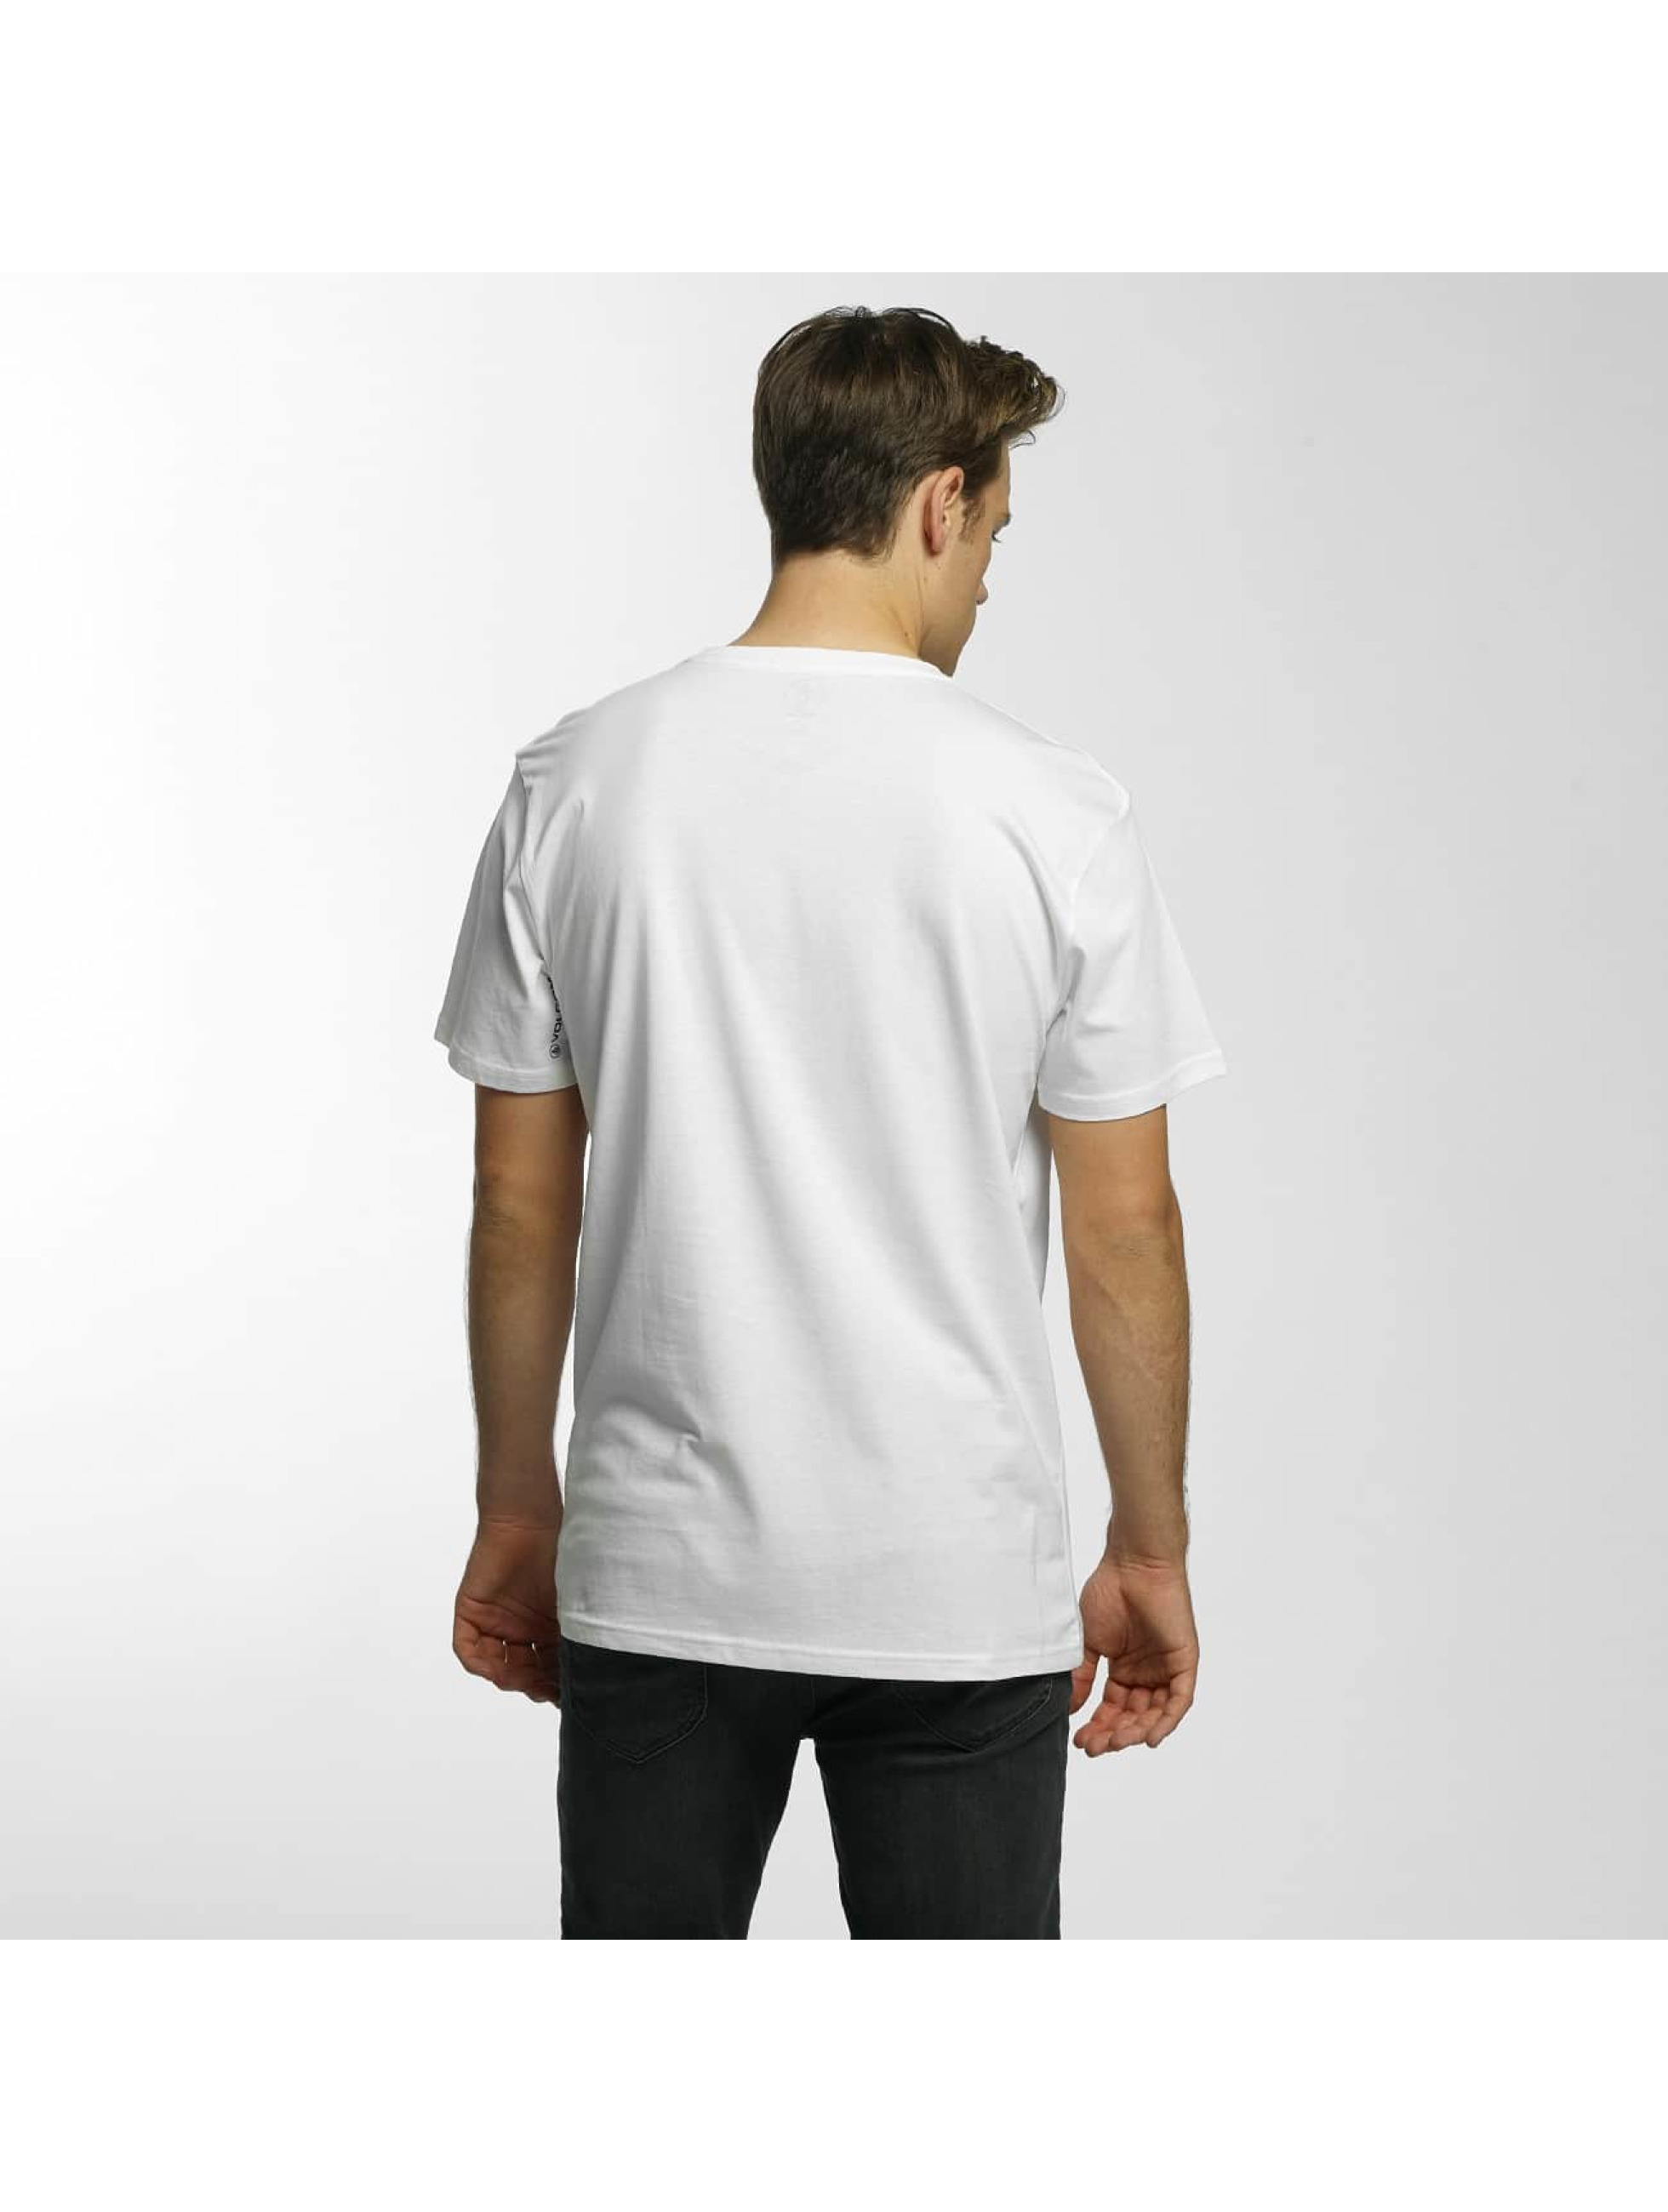 Volcom t-shirt Burnt Basic wit